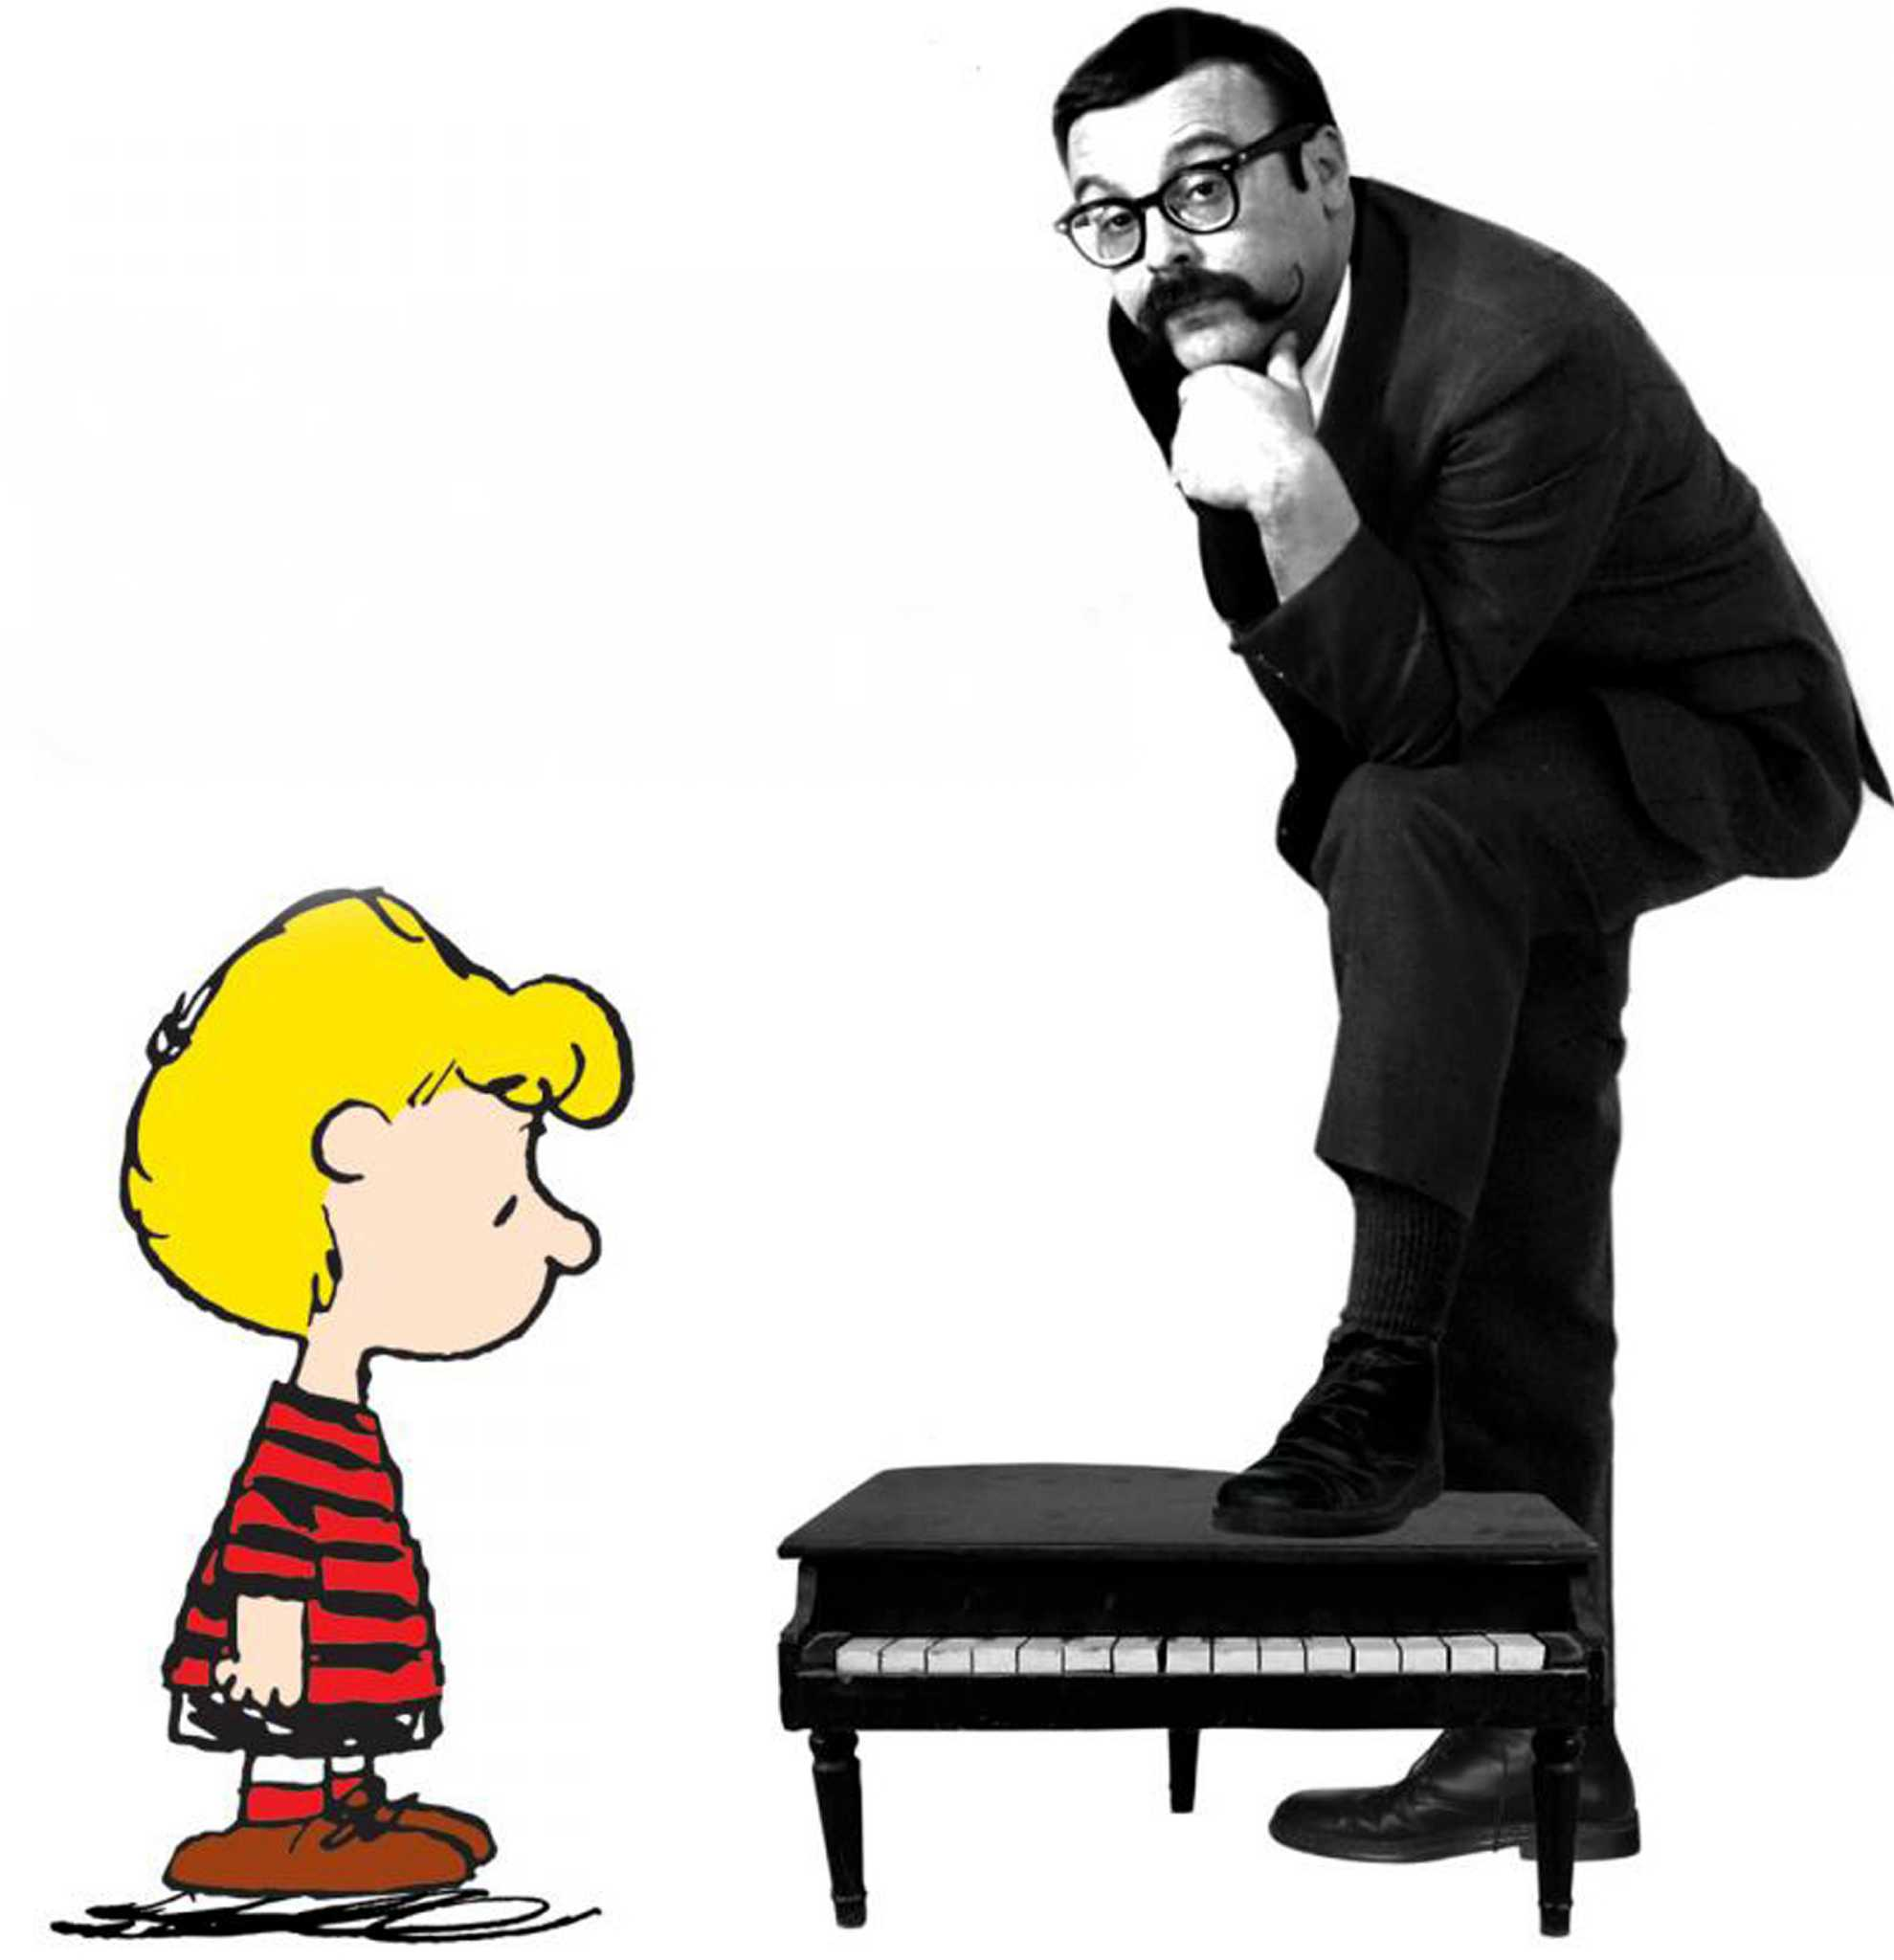 Composer, pianist Guaraldi brought Christmas to Charlie Brown ...